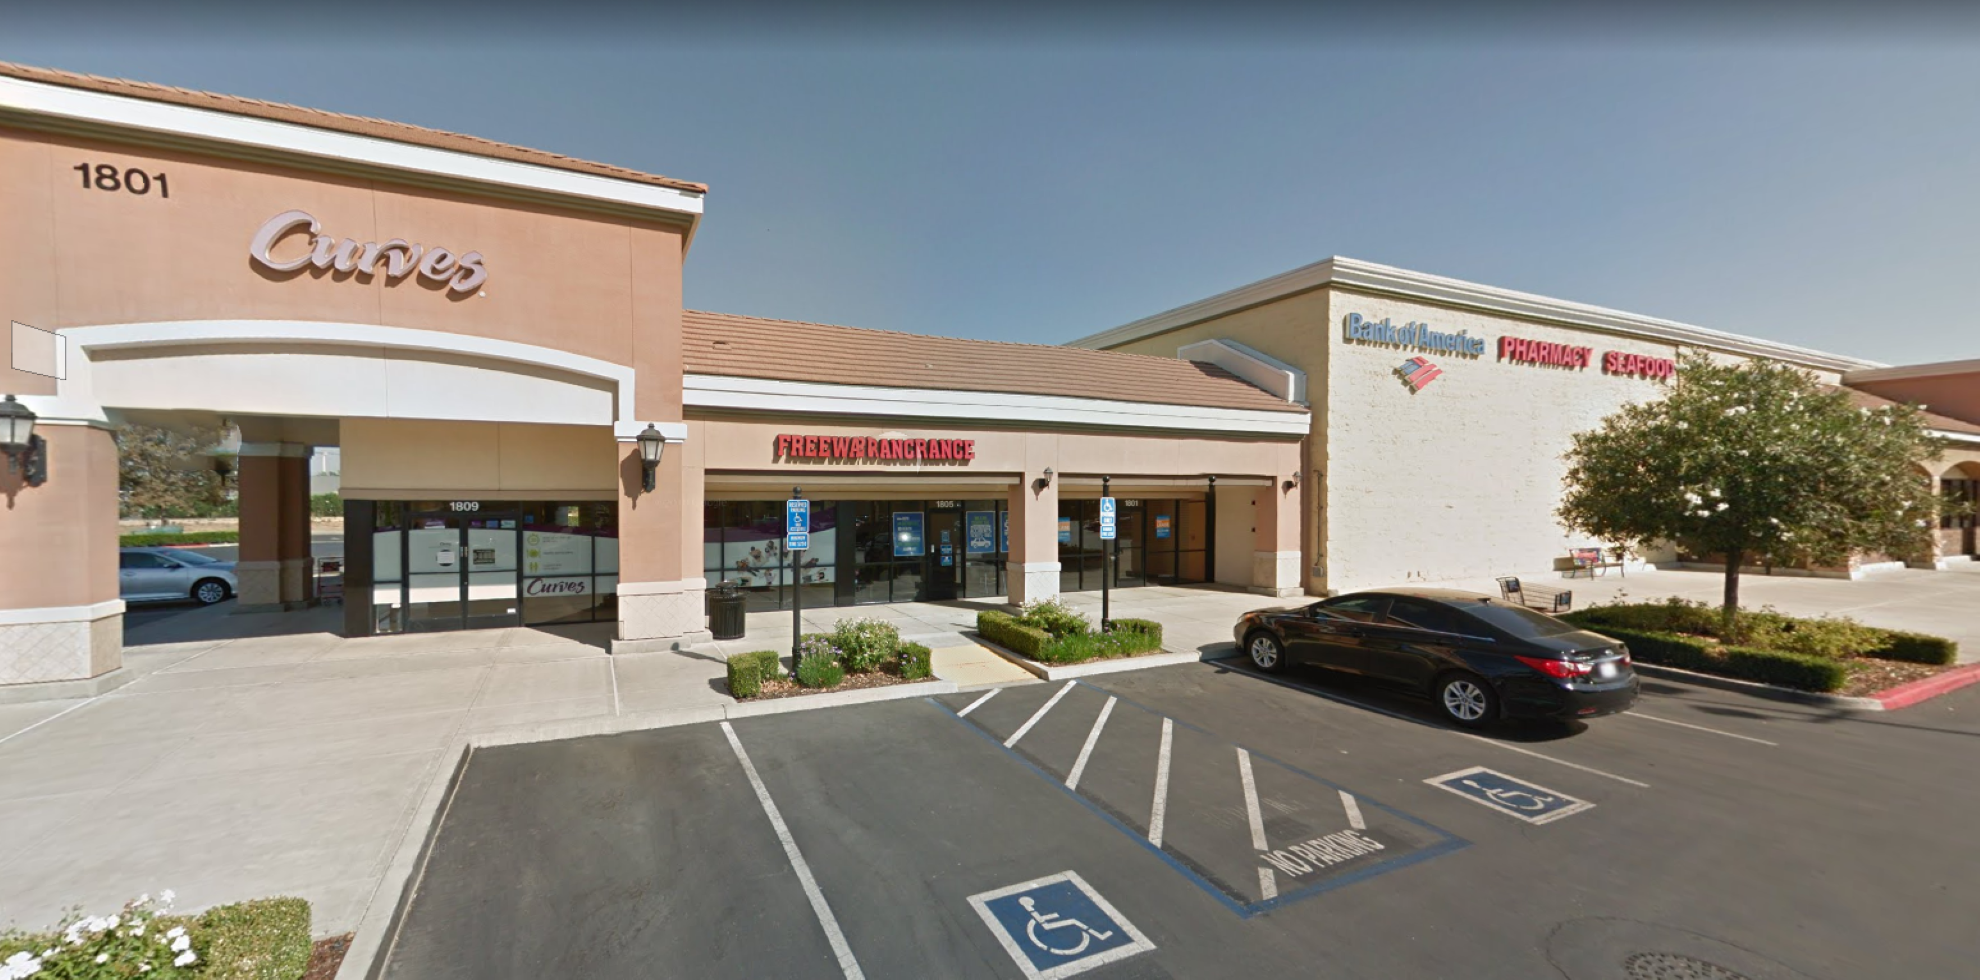 Bank of America financial center with walk-up ATM   1701 Bellevue Rd, Atwater, CA 95301